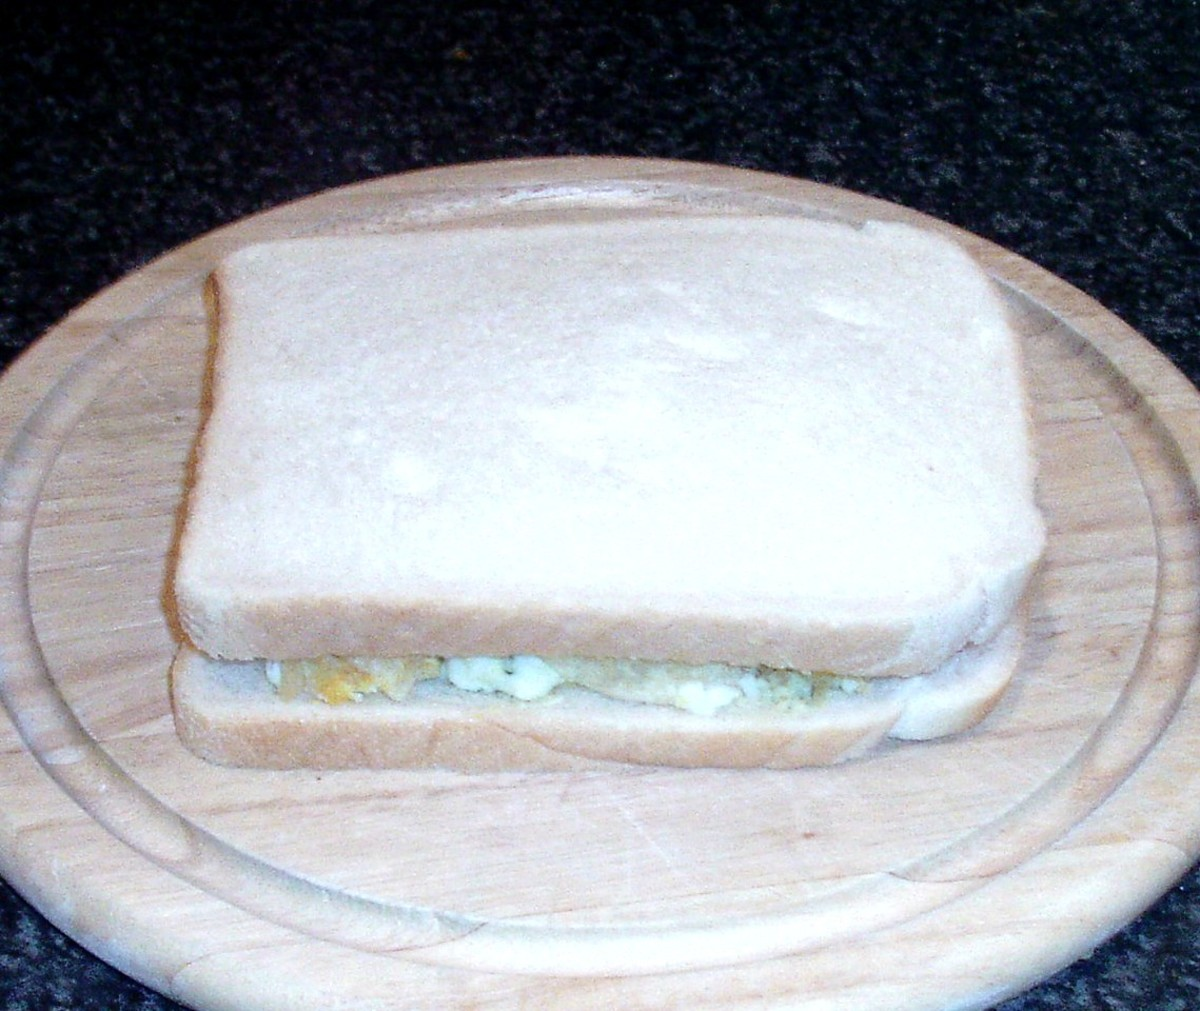 Top slice of bread is laid in place